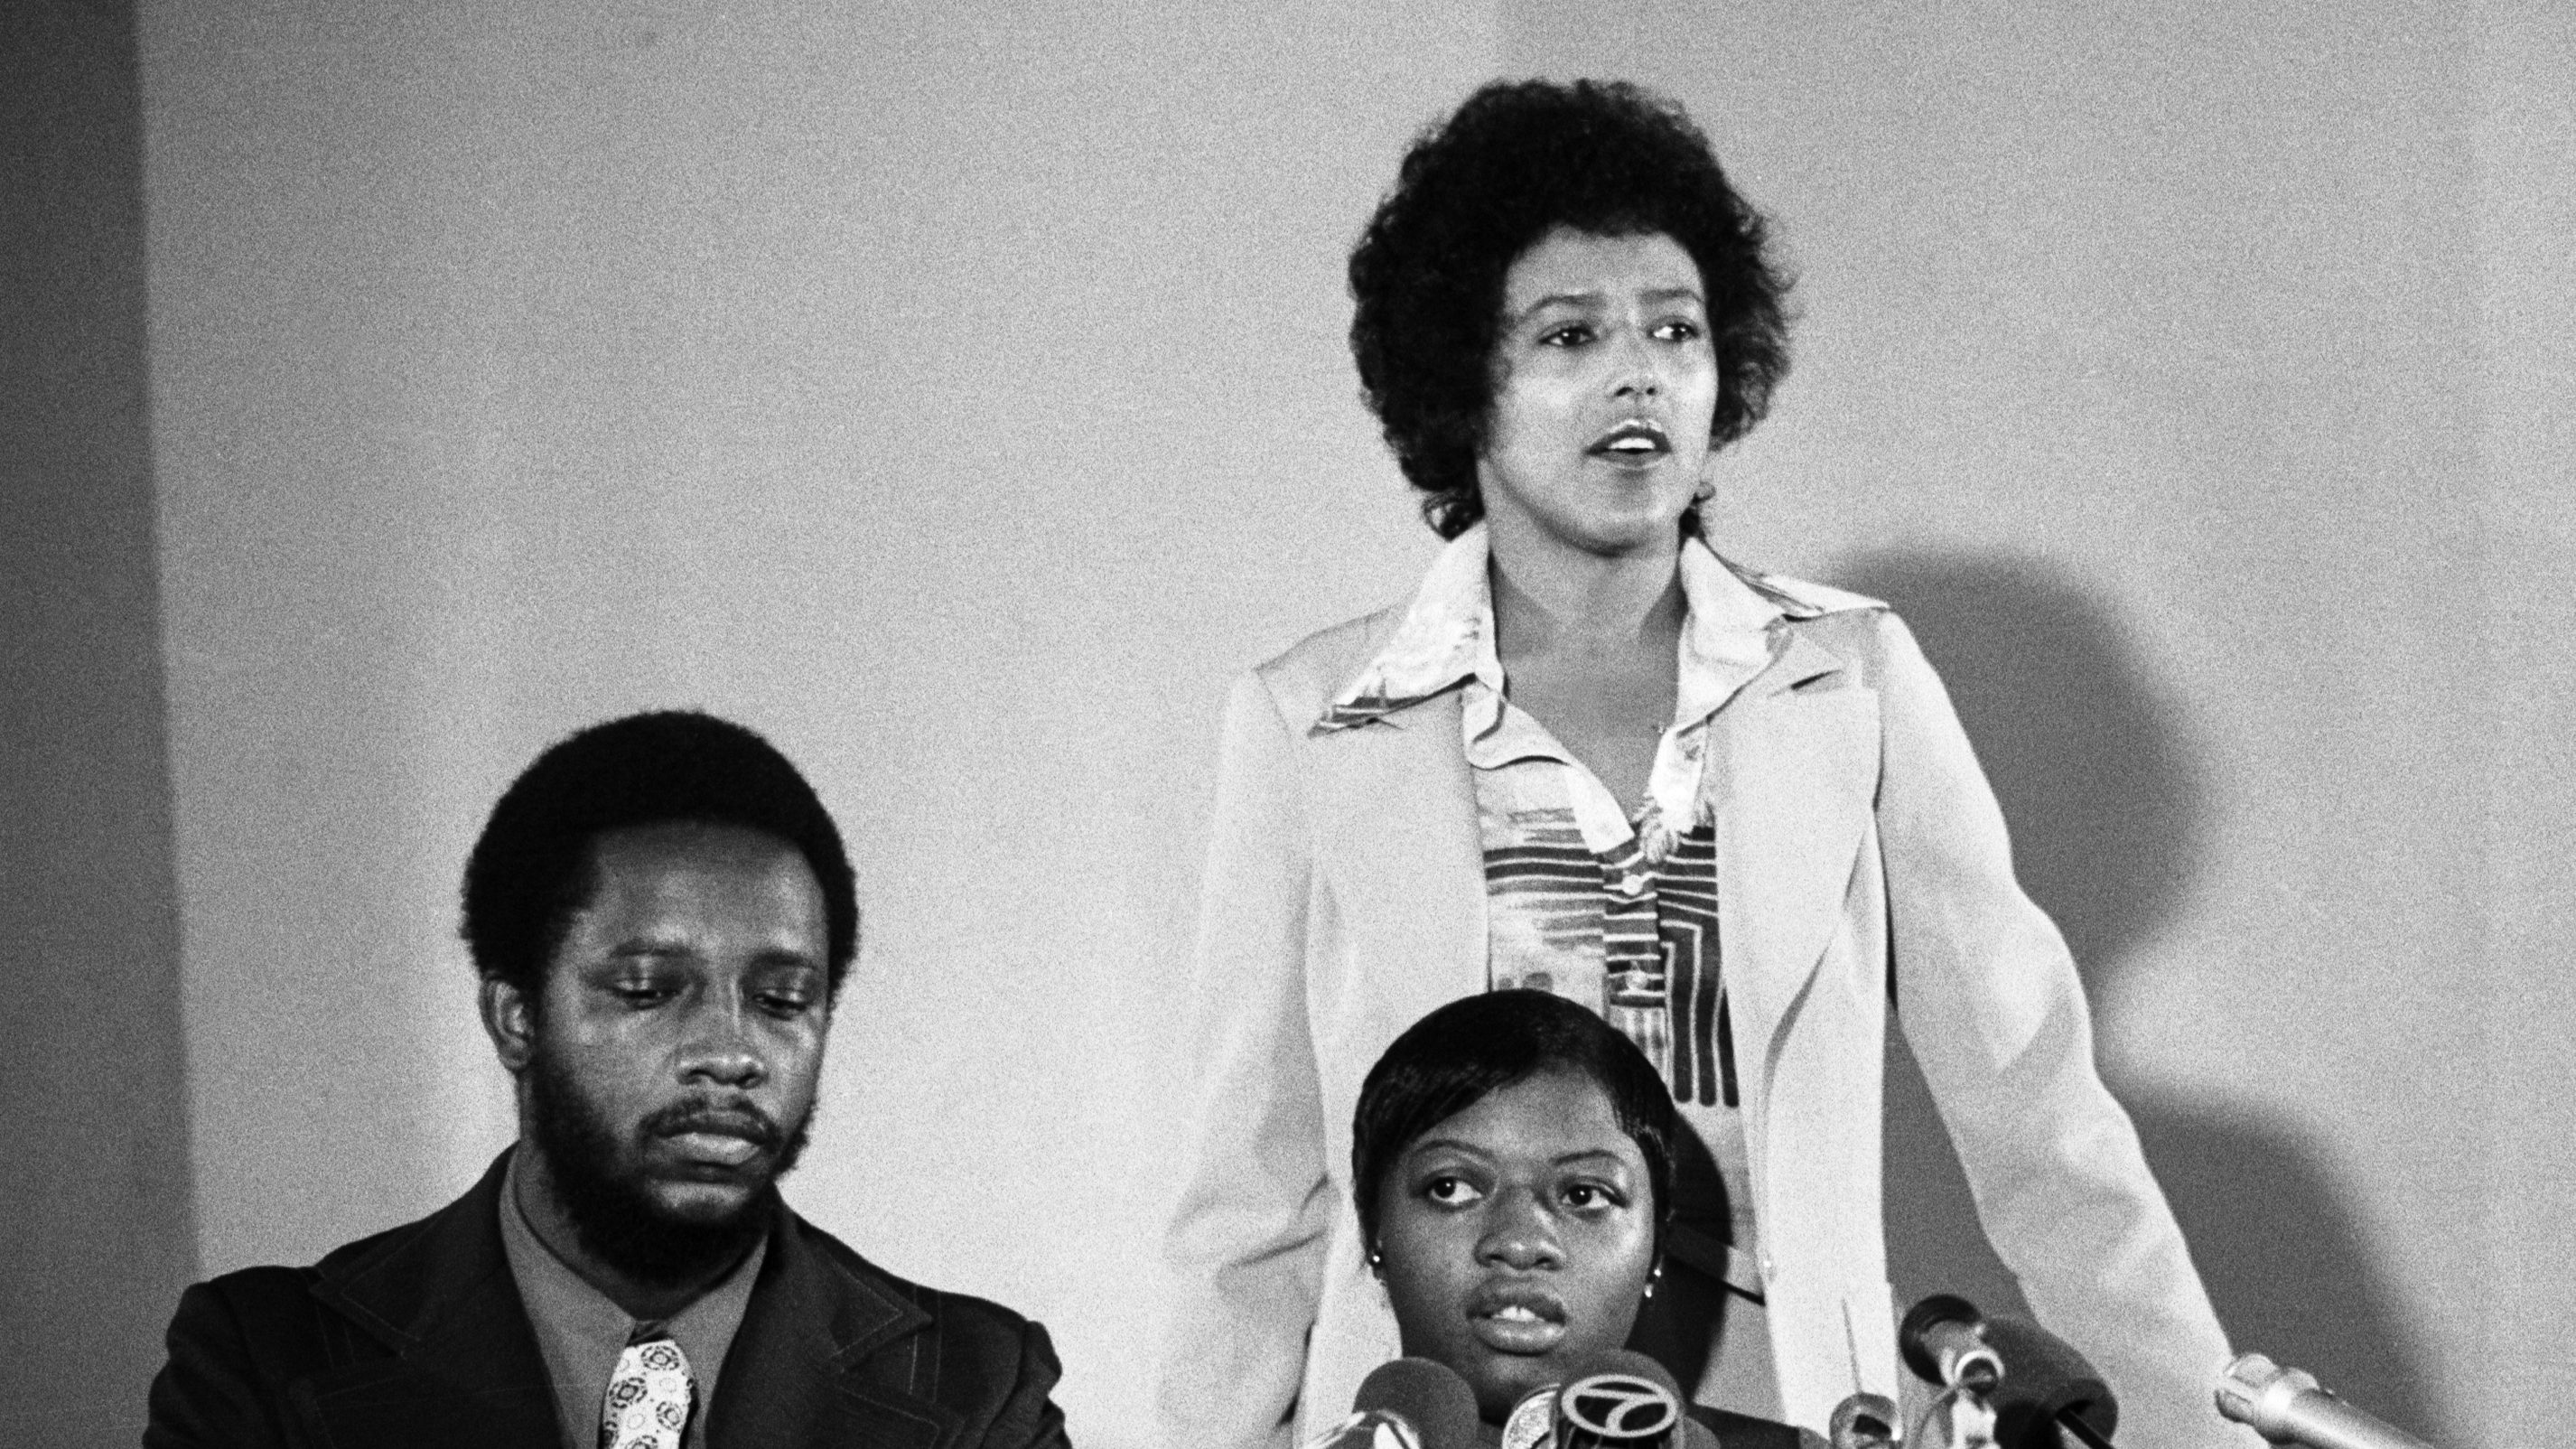 Elaine Brown, President of the Black Panther Party (back) presents Joanne Little, right, in Oakland, Calif., August 22, 1975. Little had recently been acquitted of the murder of her white jailer.